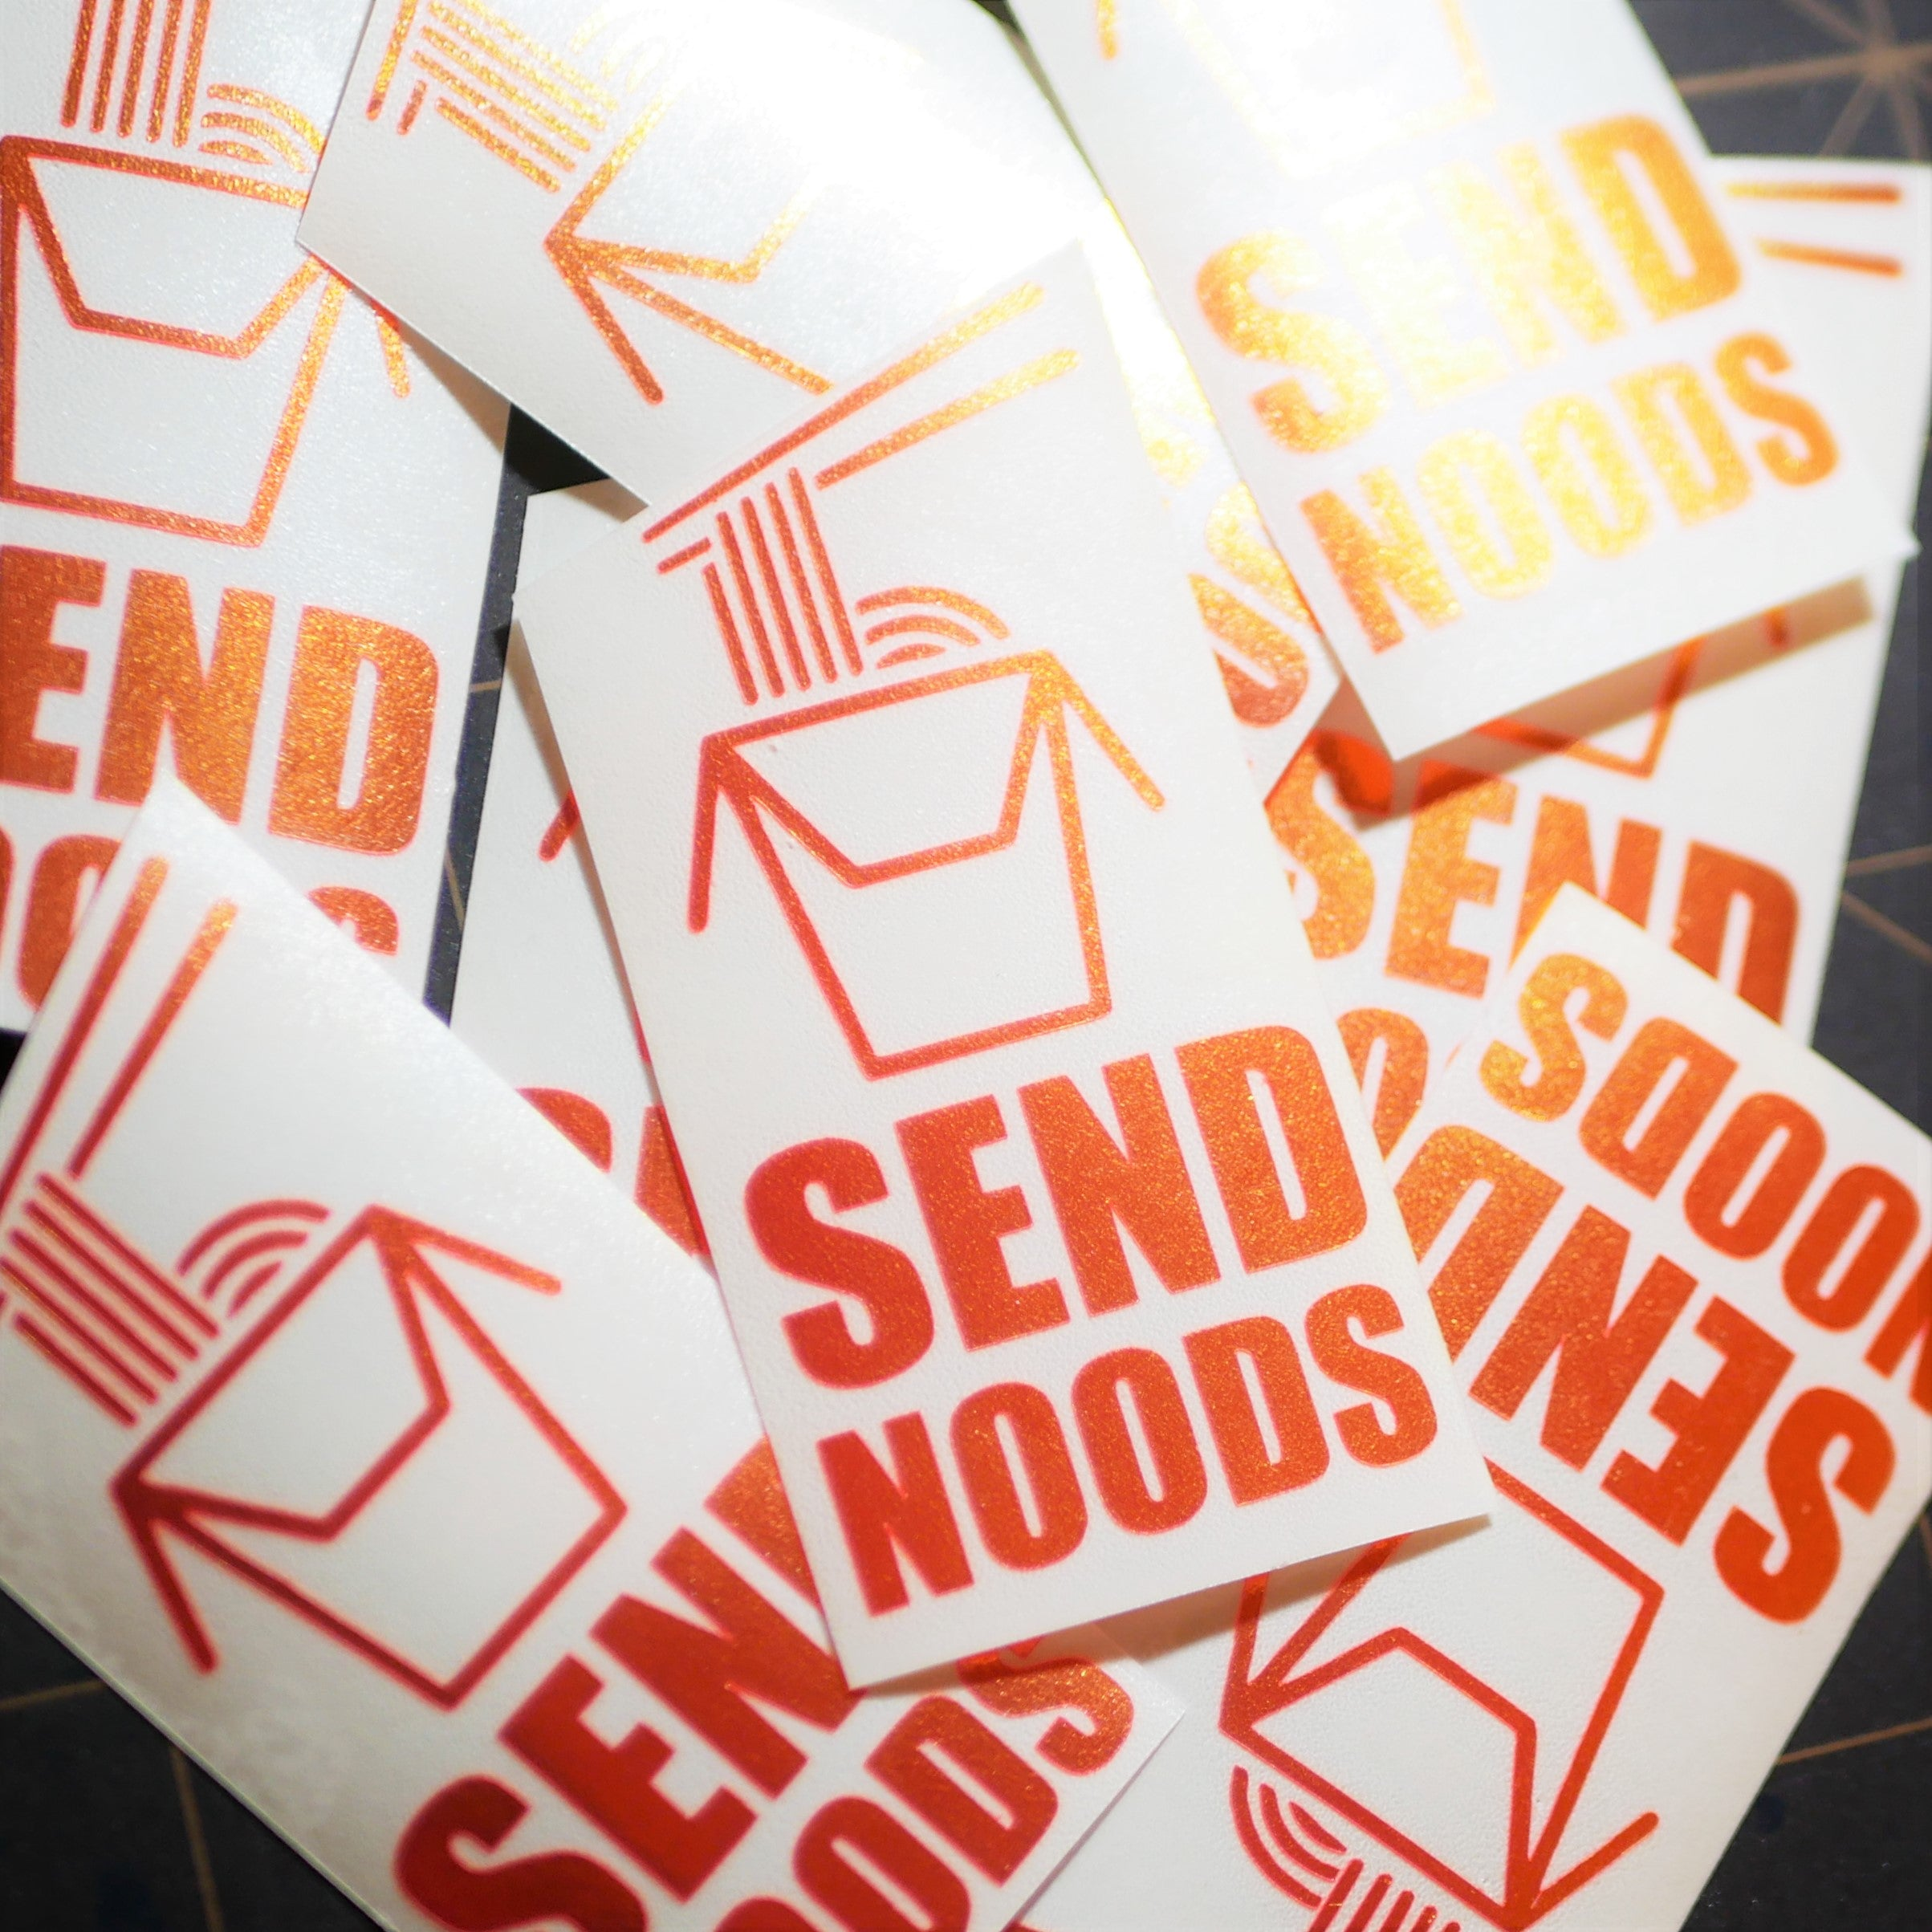 Limited Edition Send Noods Vinyl Decal